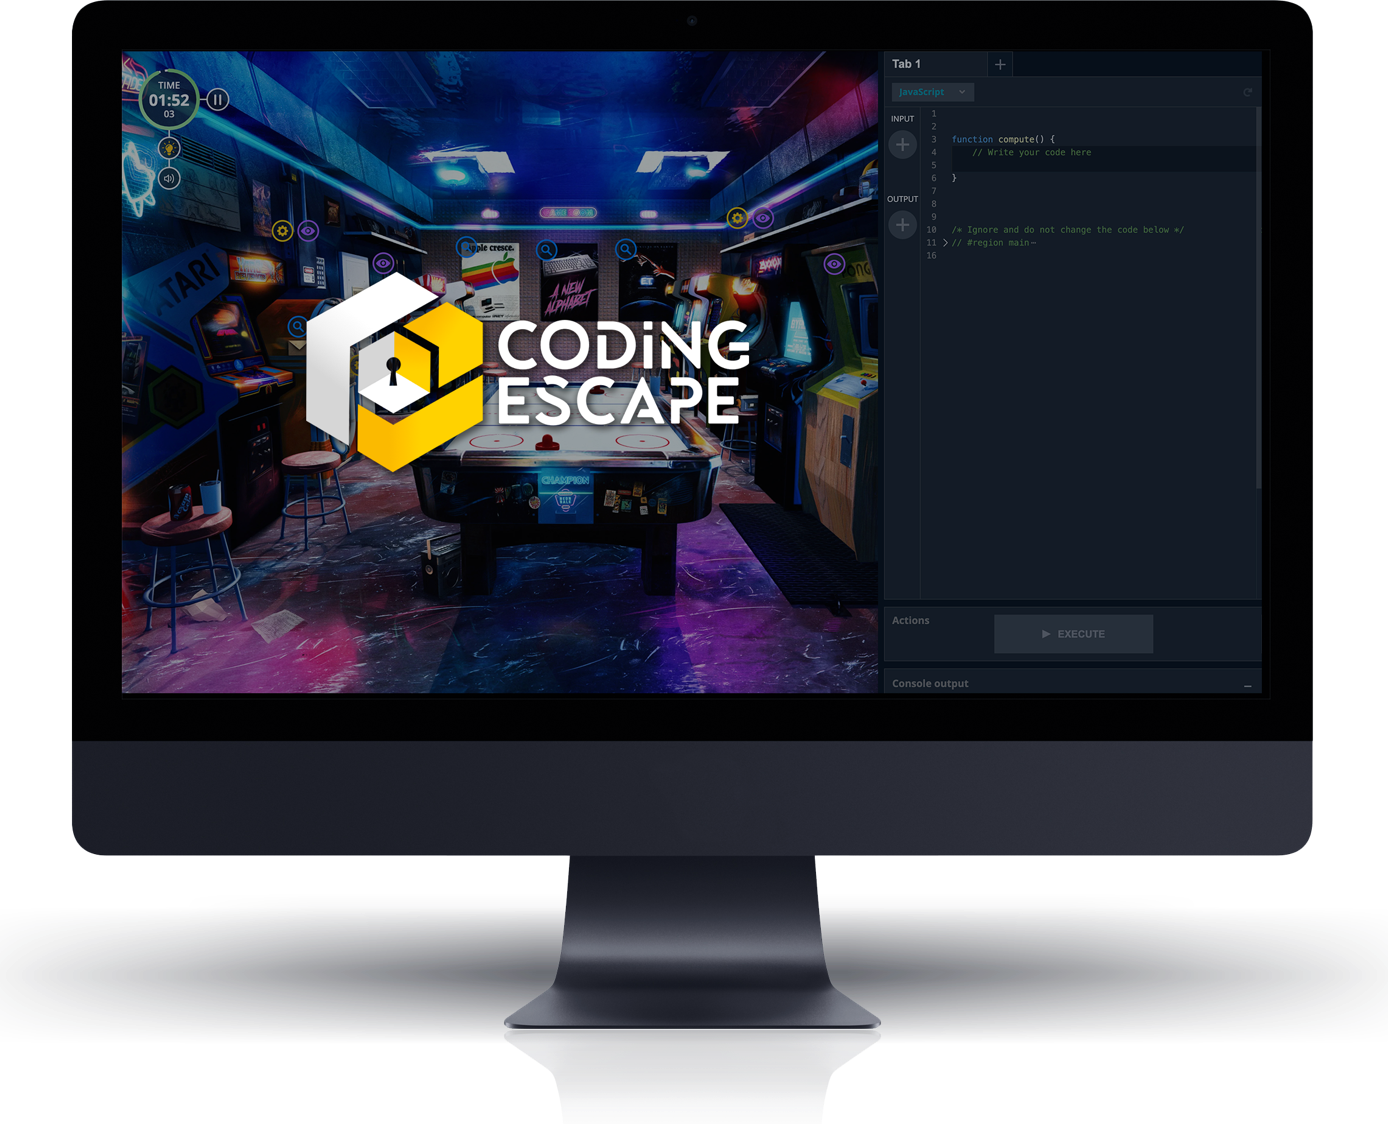 The very first escape game for coders and non-coders